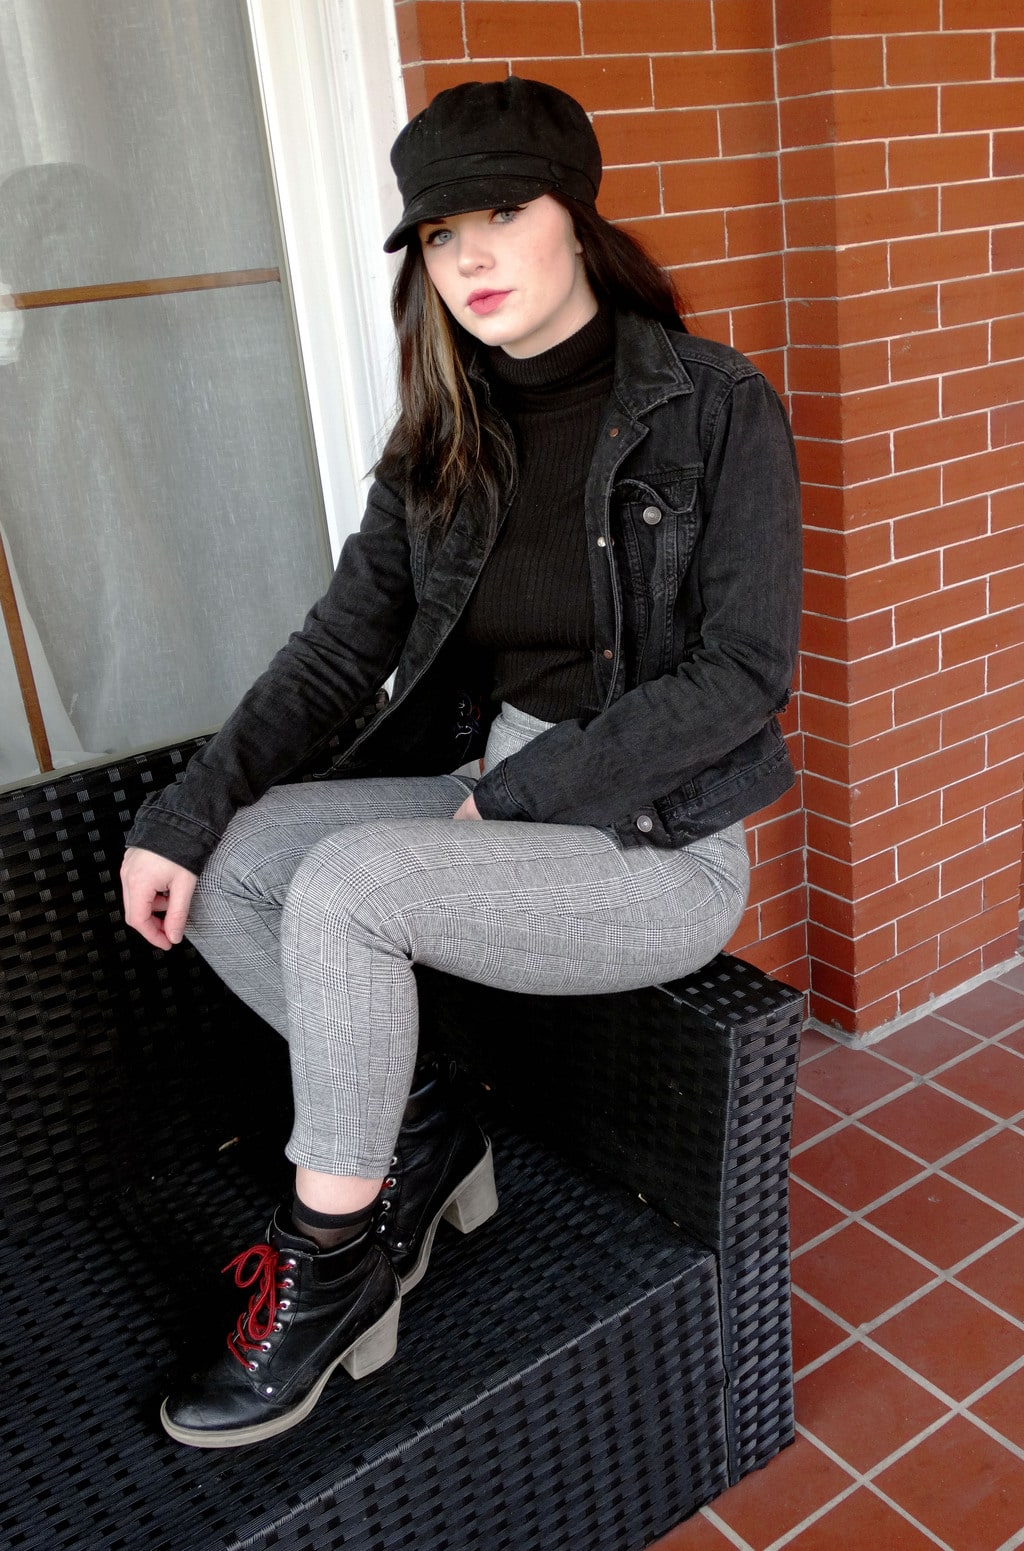 West Virginia University student wears a black turtleneck sweater with white and grey checkered pants, lace up chunky-heeled booties, a distressed dark grey denim jacket, and a black cabby hat.